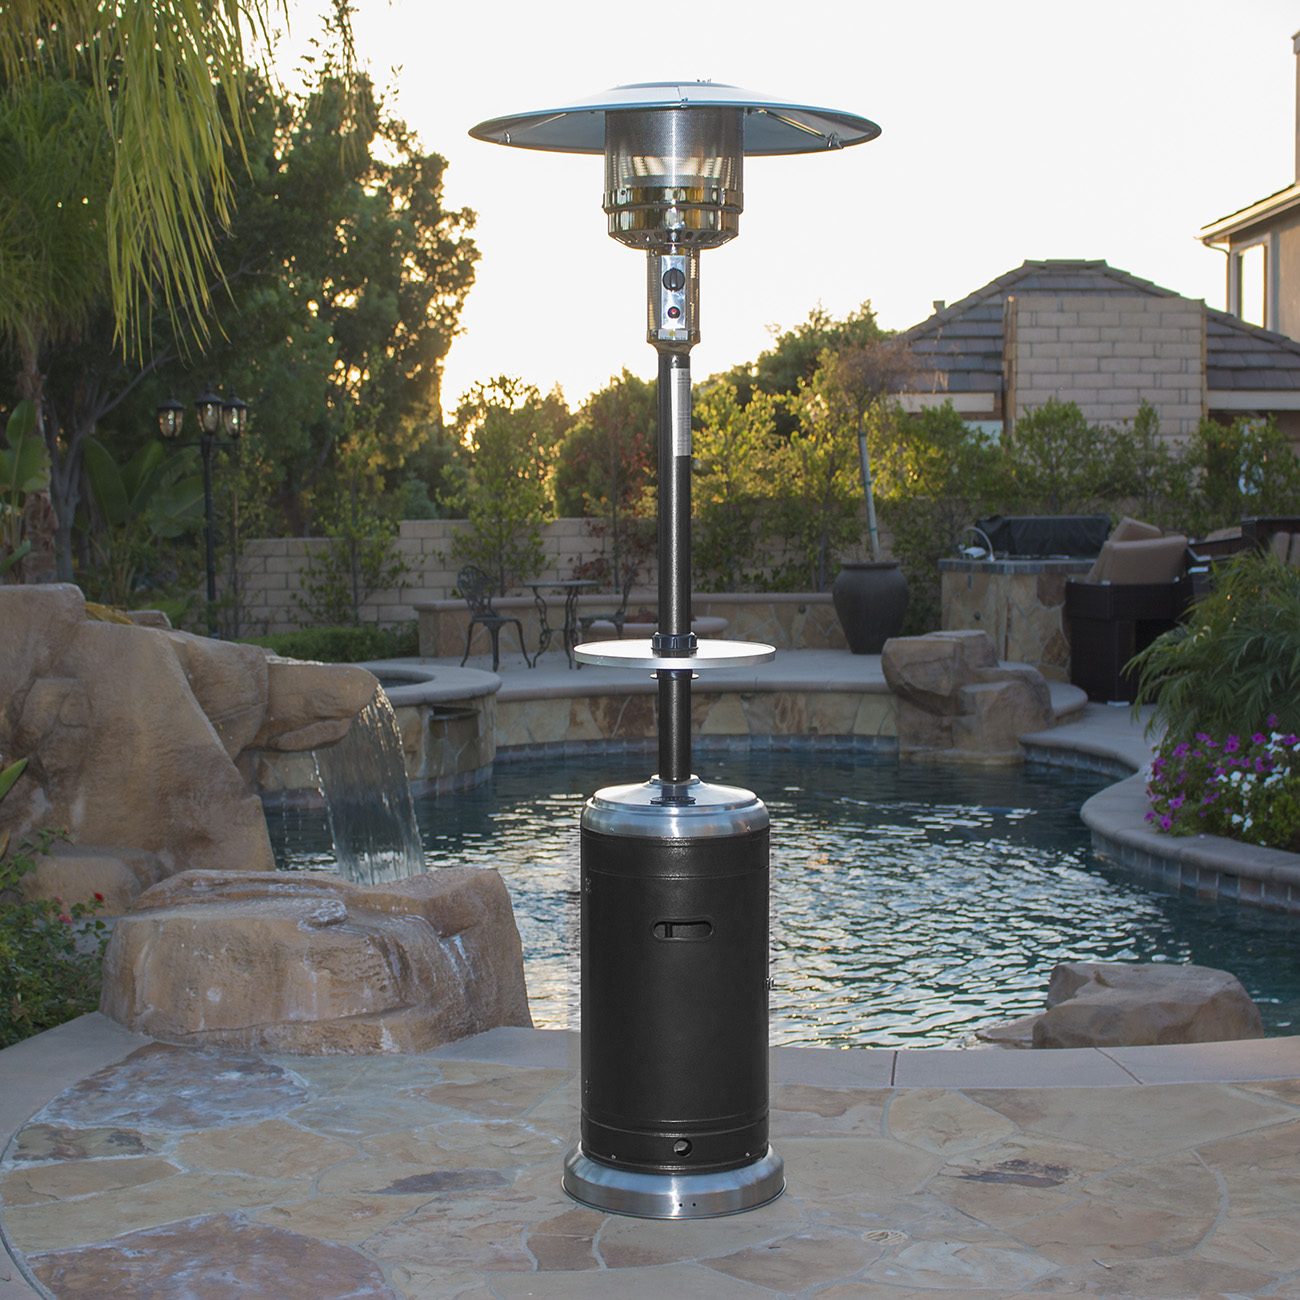 Charmant Garden Outdoor Patio Heater W Table Propane Standing